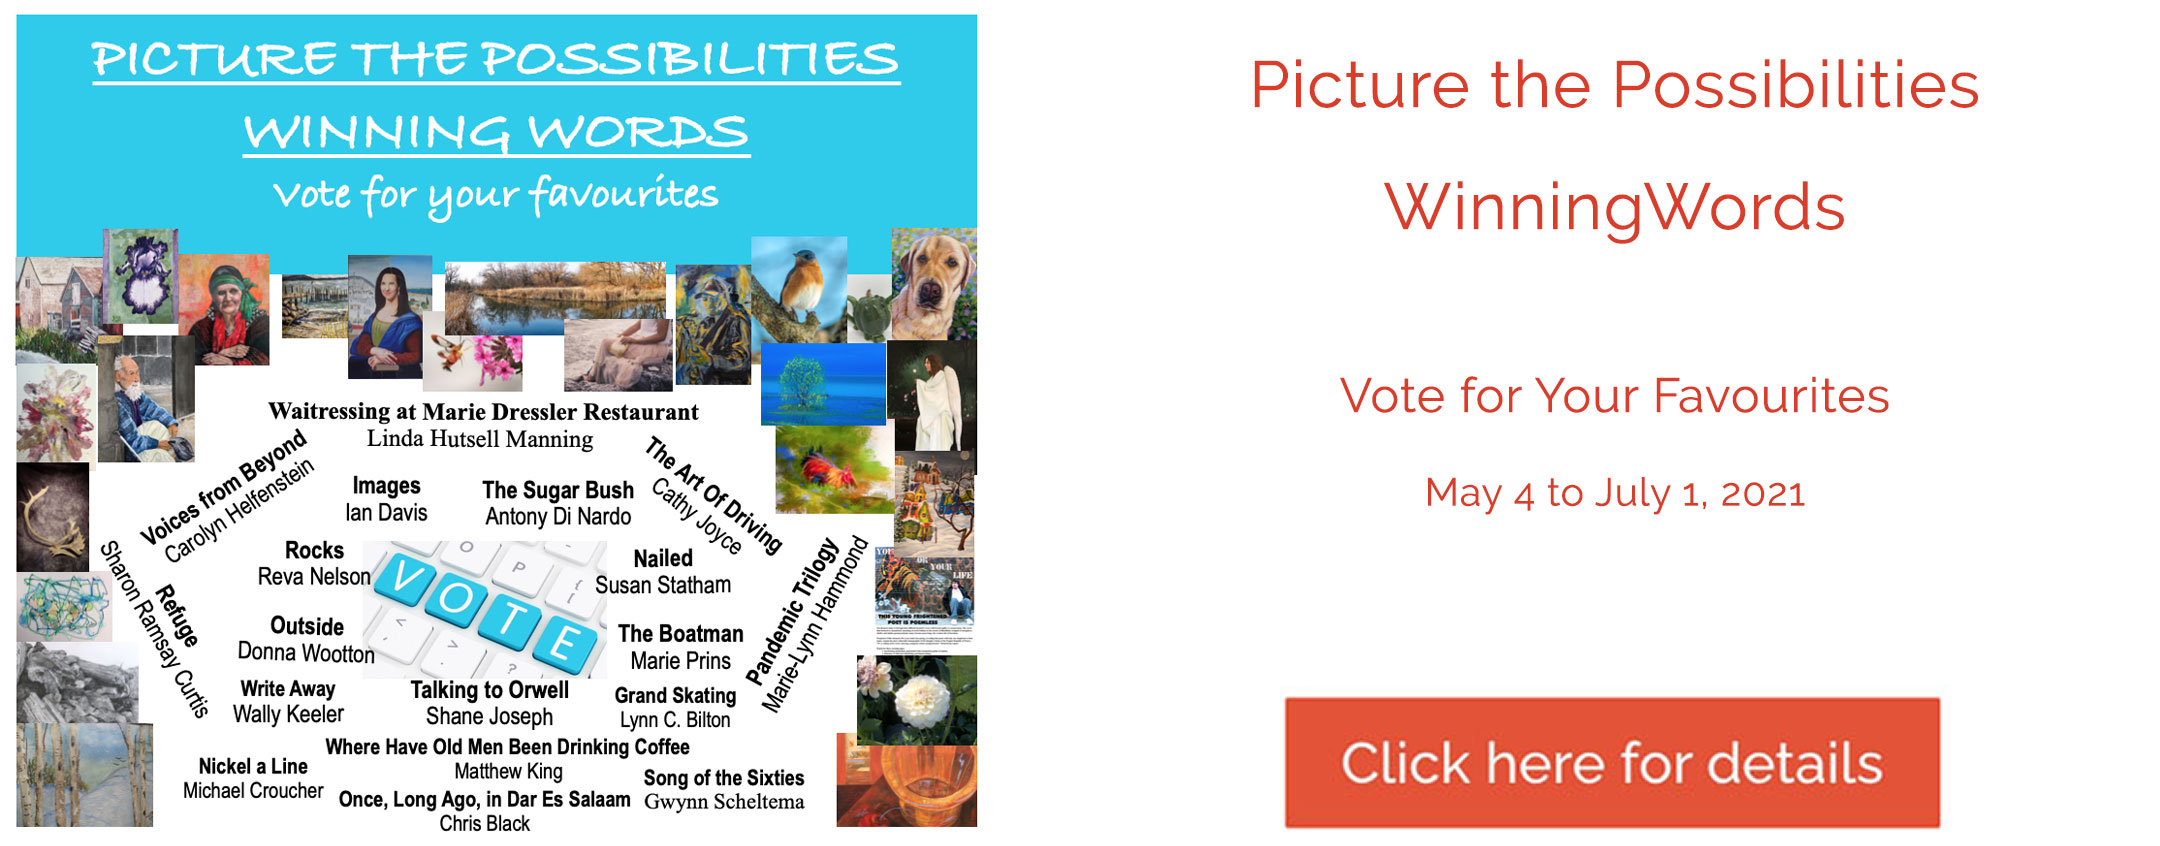 Picture the Possibilities & Winning Words - Vote for your Favourites